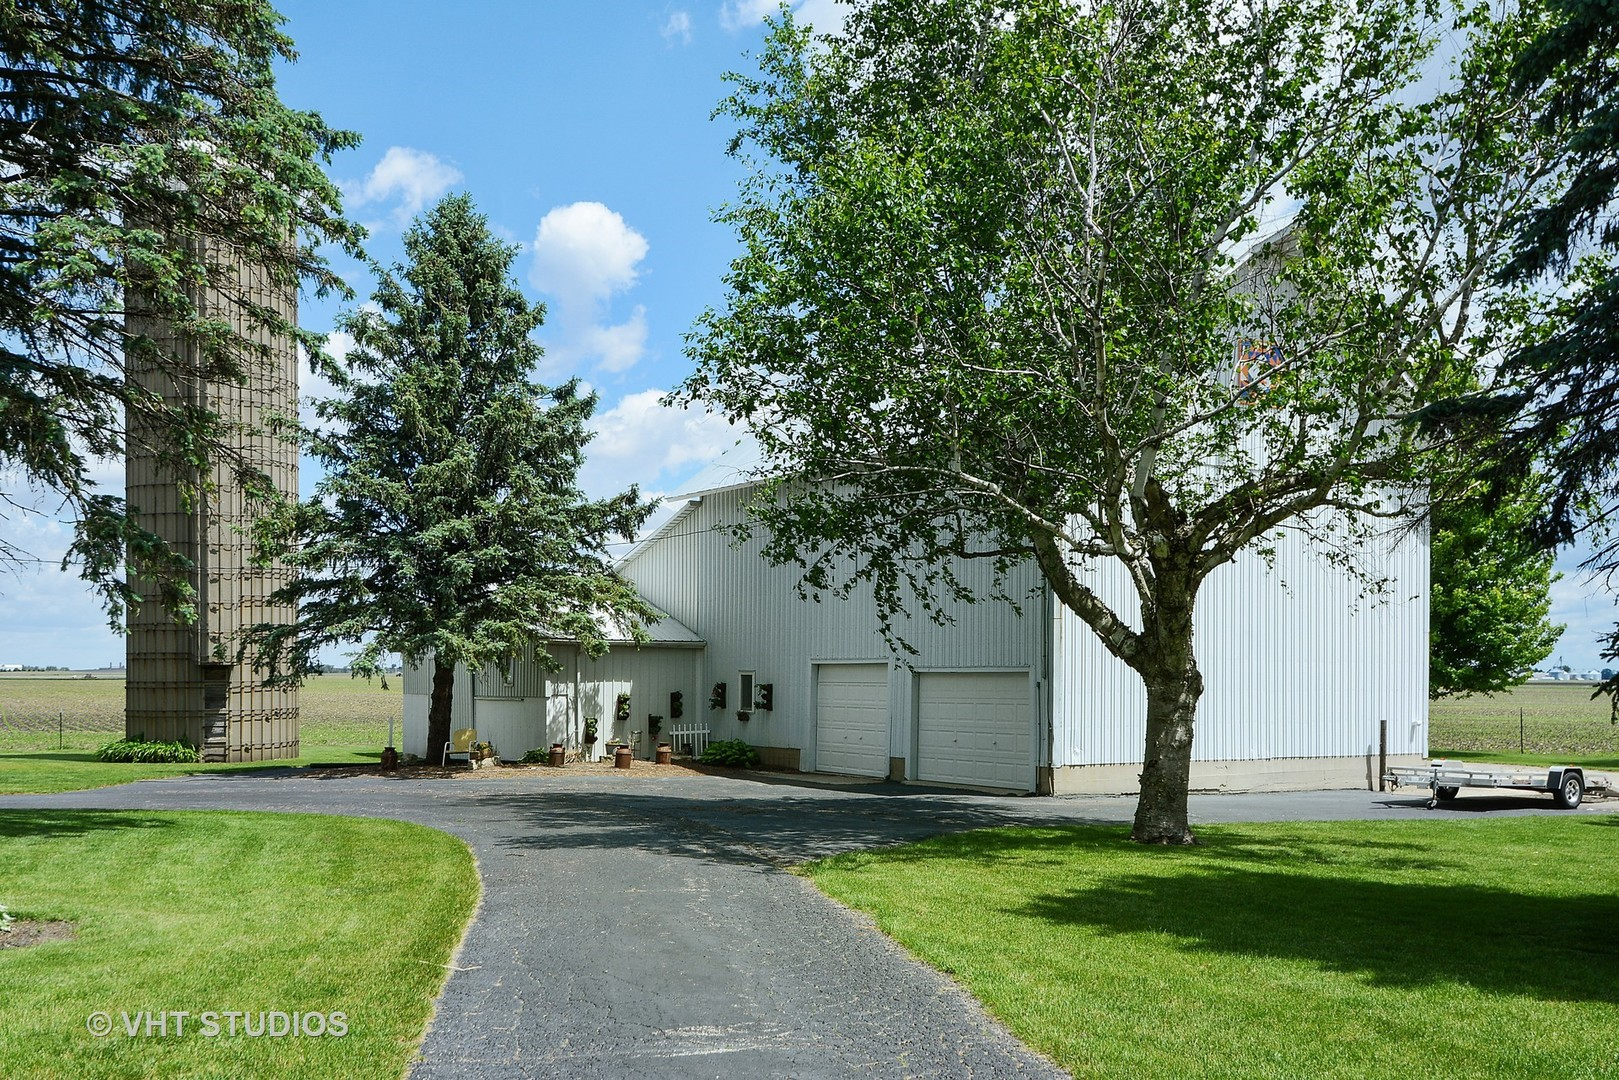 16053 Owens Road, HINCKLEY, IL Single Family Home Property Listing ...